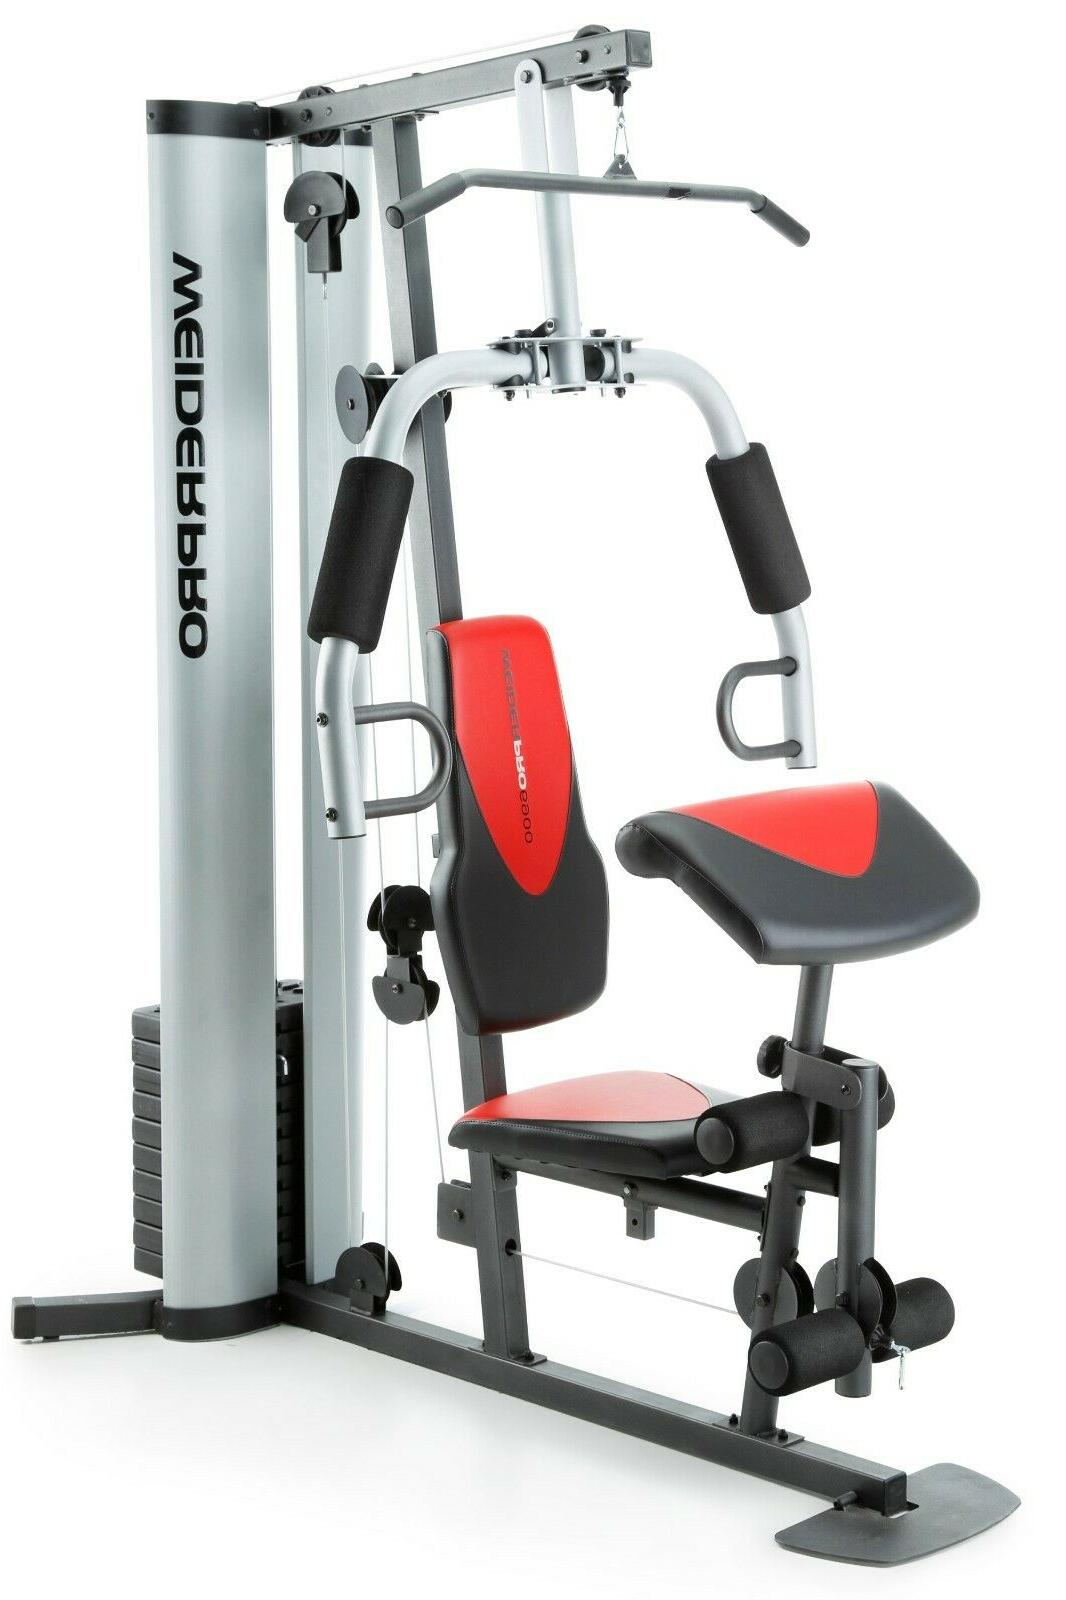 PRO Gym Weight Workout Machine Strength Training Fitness Exe